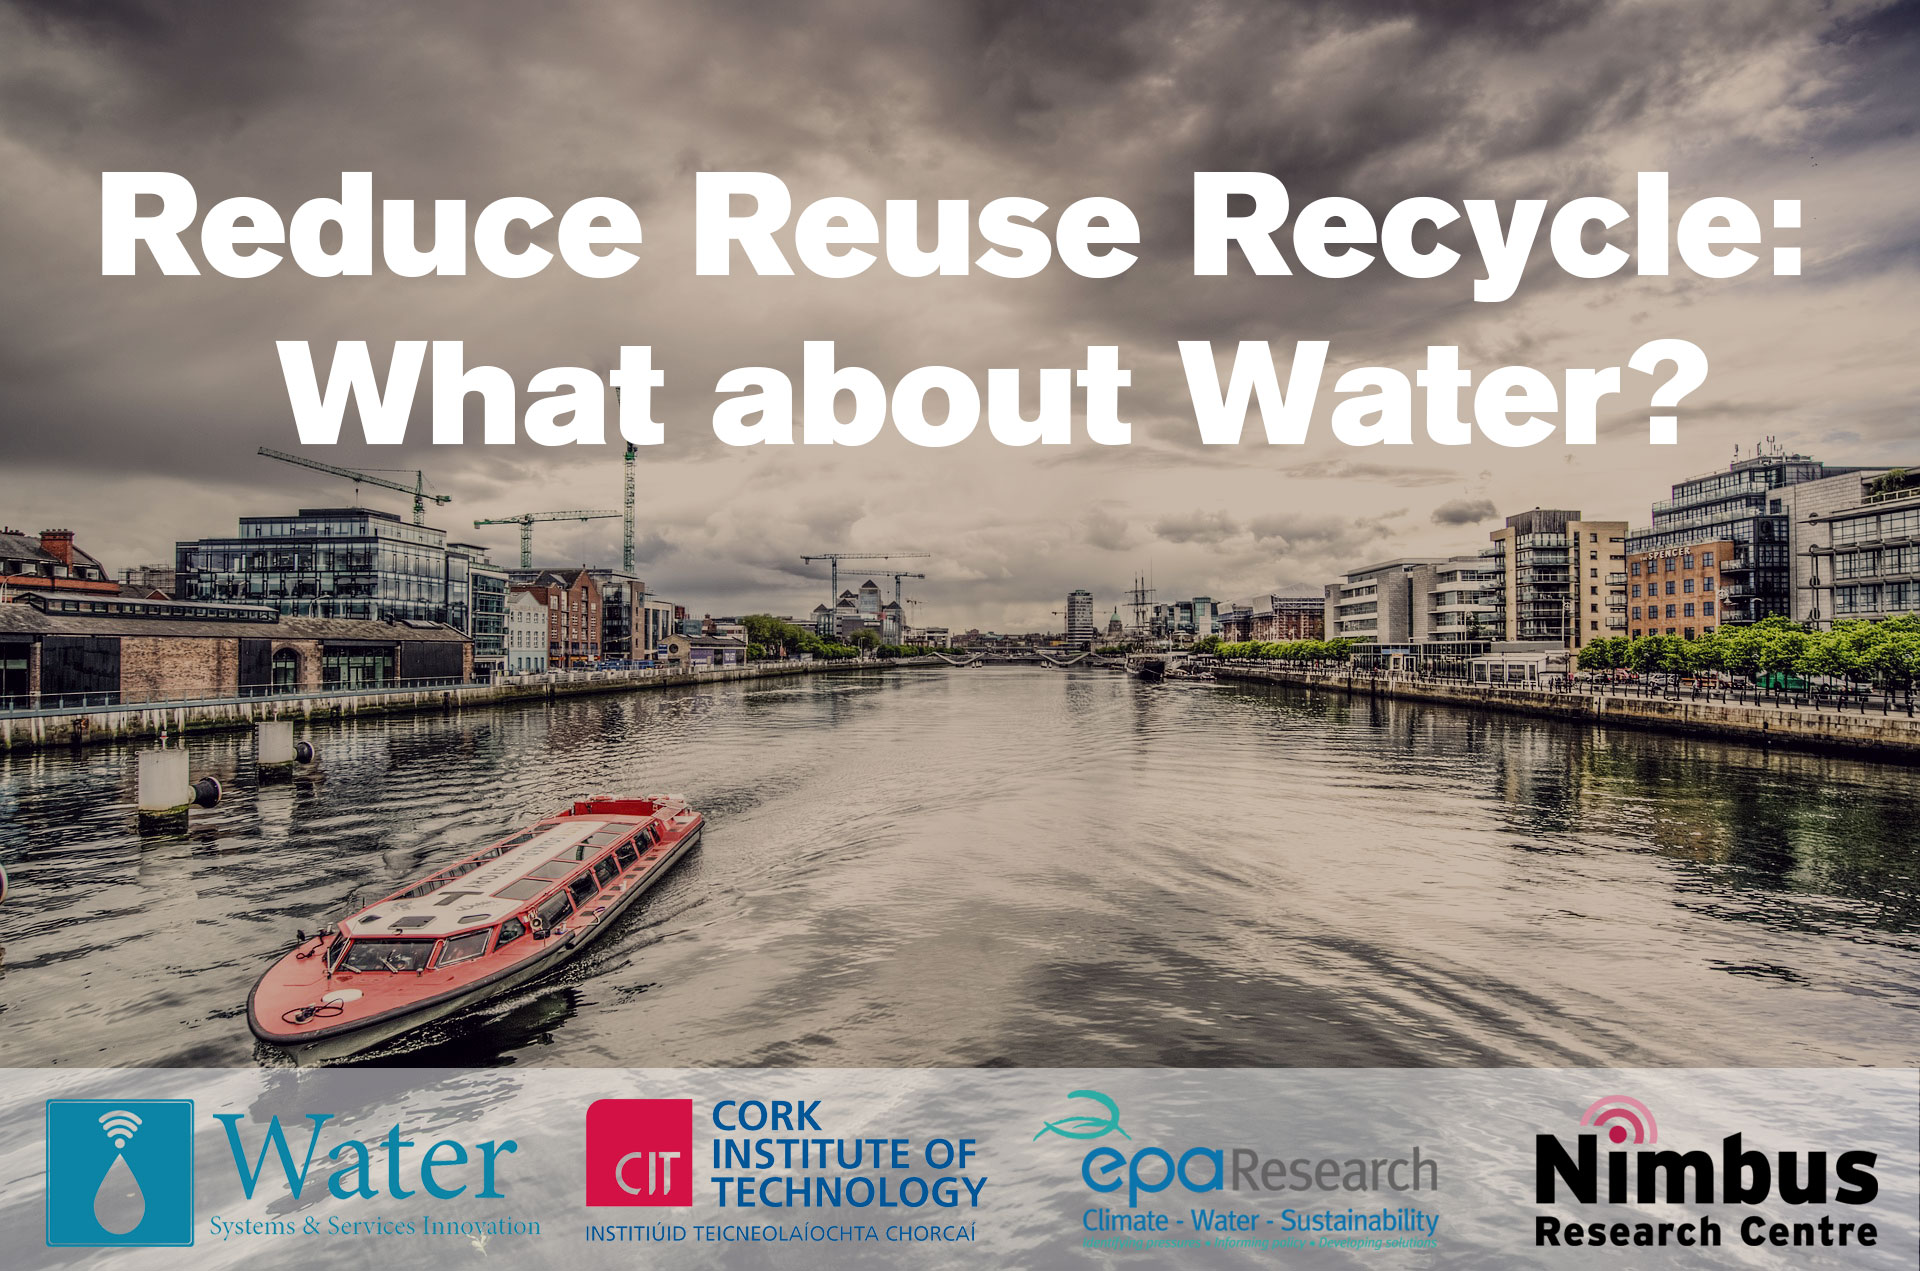 Reduce Reuse Recycle - What about Water